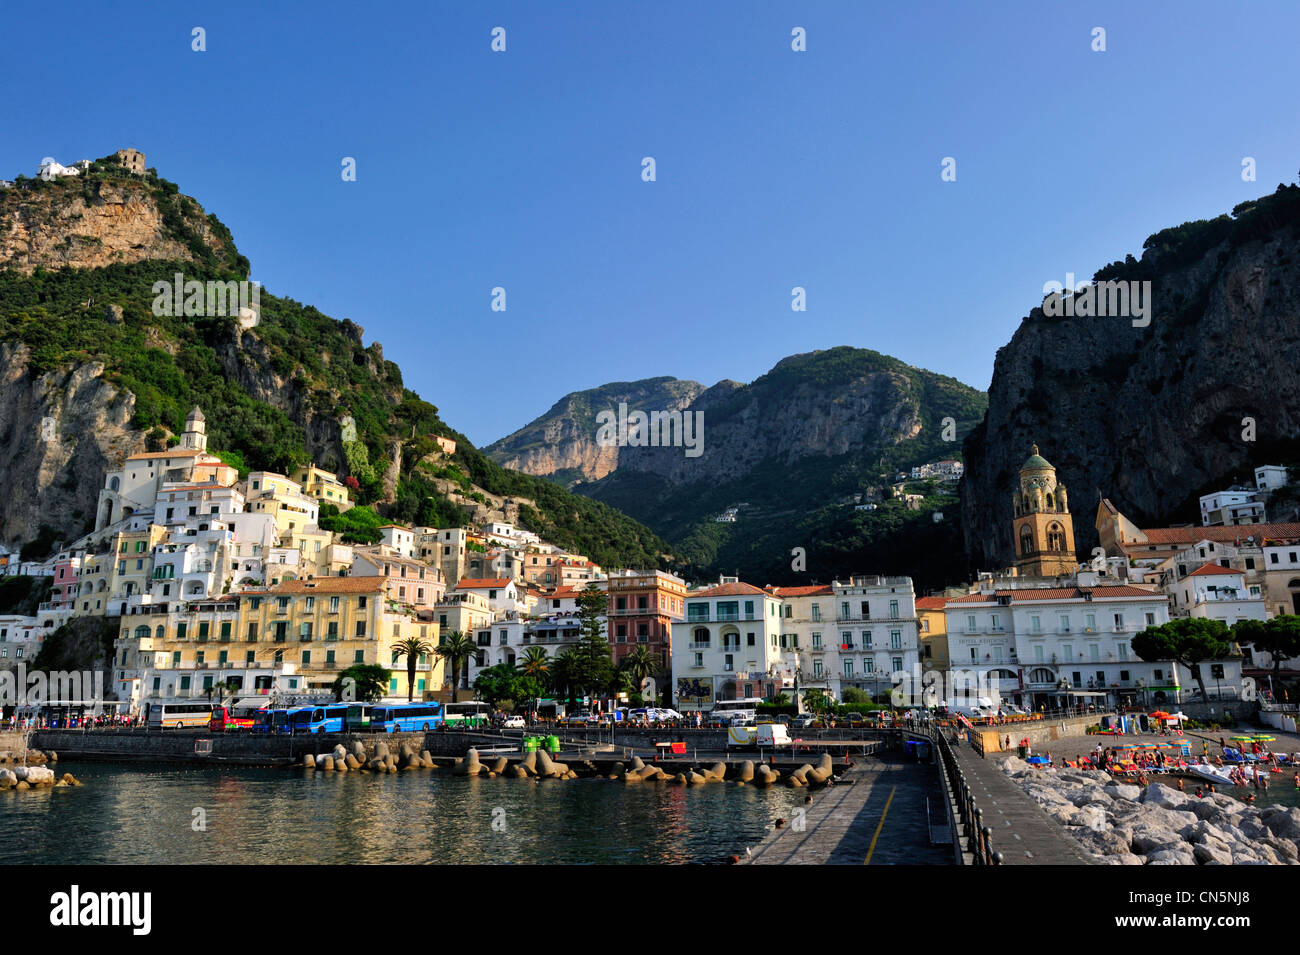 Italy, Campania, Amalfi Coast, listed as World Heritage by UNESCO, Amalfi, the harbour - Stock Image